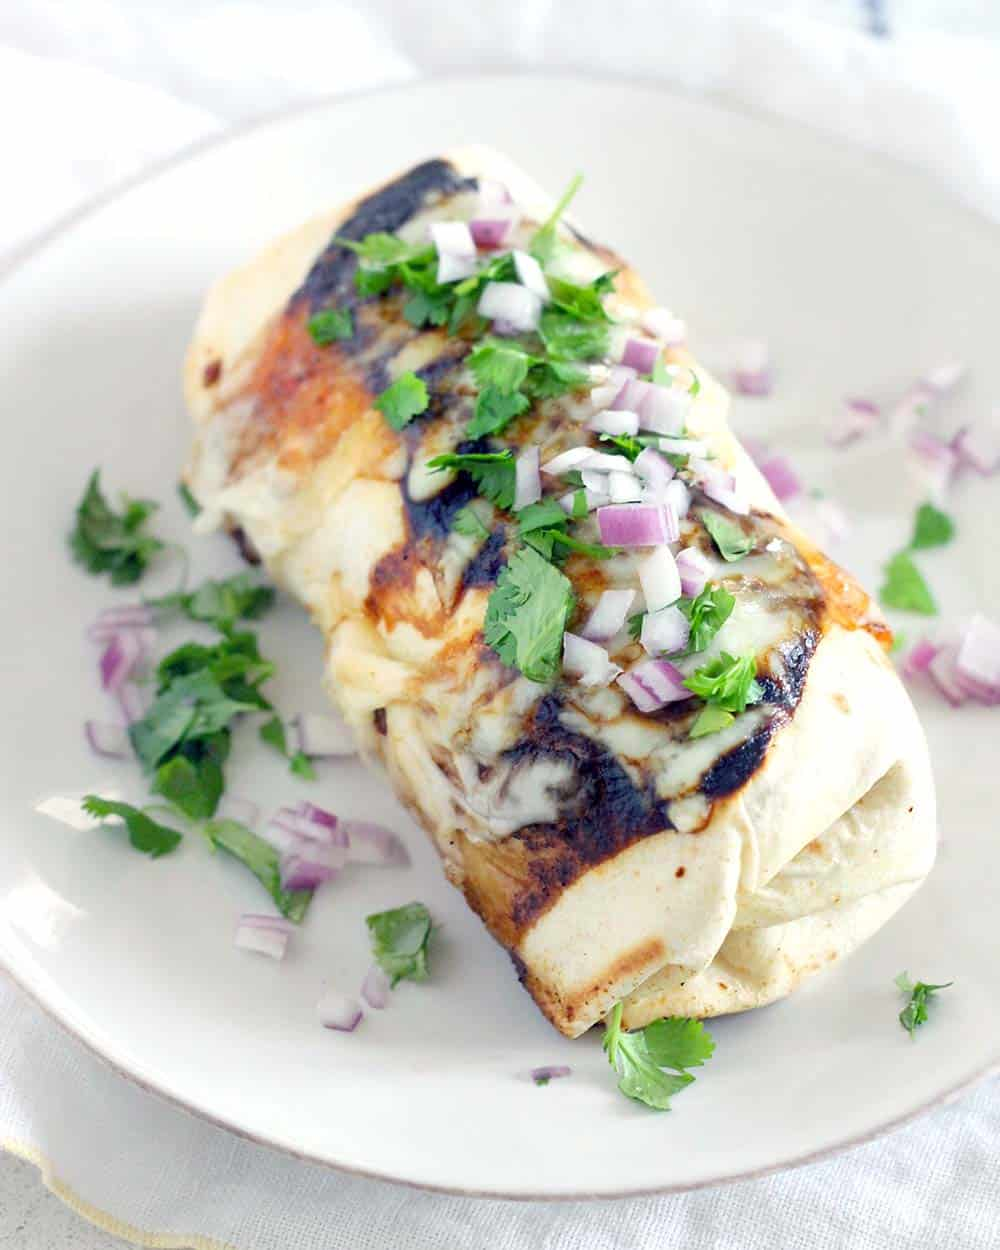 This Baked Chipotle Chicken Burritos recipe is smoky and bursting with flavor. They are easy to assemble ahead of time and covered with chipotle sauce and melty cheese, just like at your favorite Mexican restaurant!